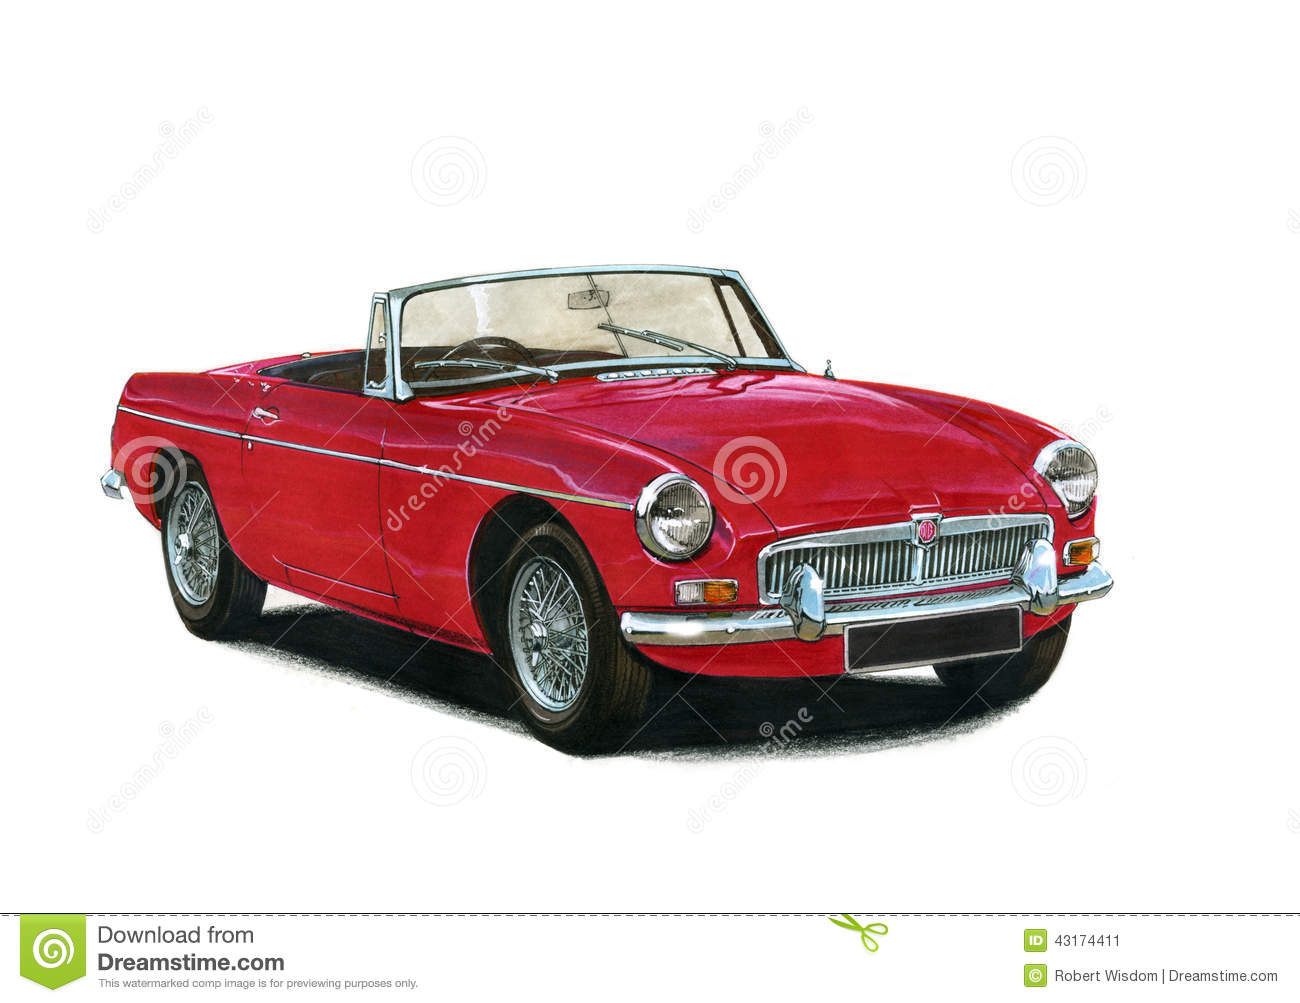 MGB Roadster 1960s 1970s Editorial Photo - Image: 43174411